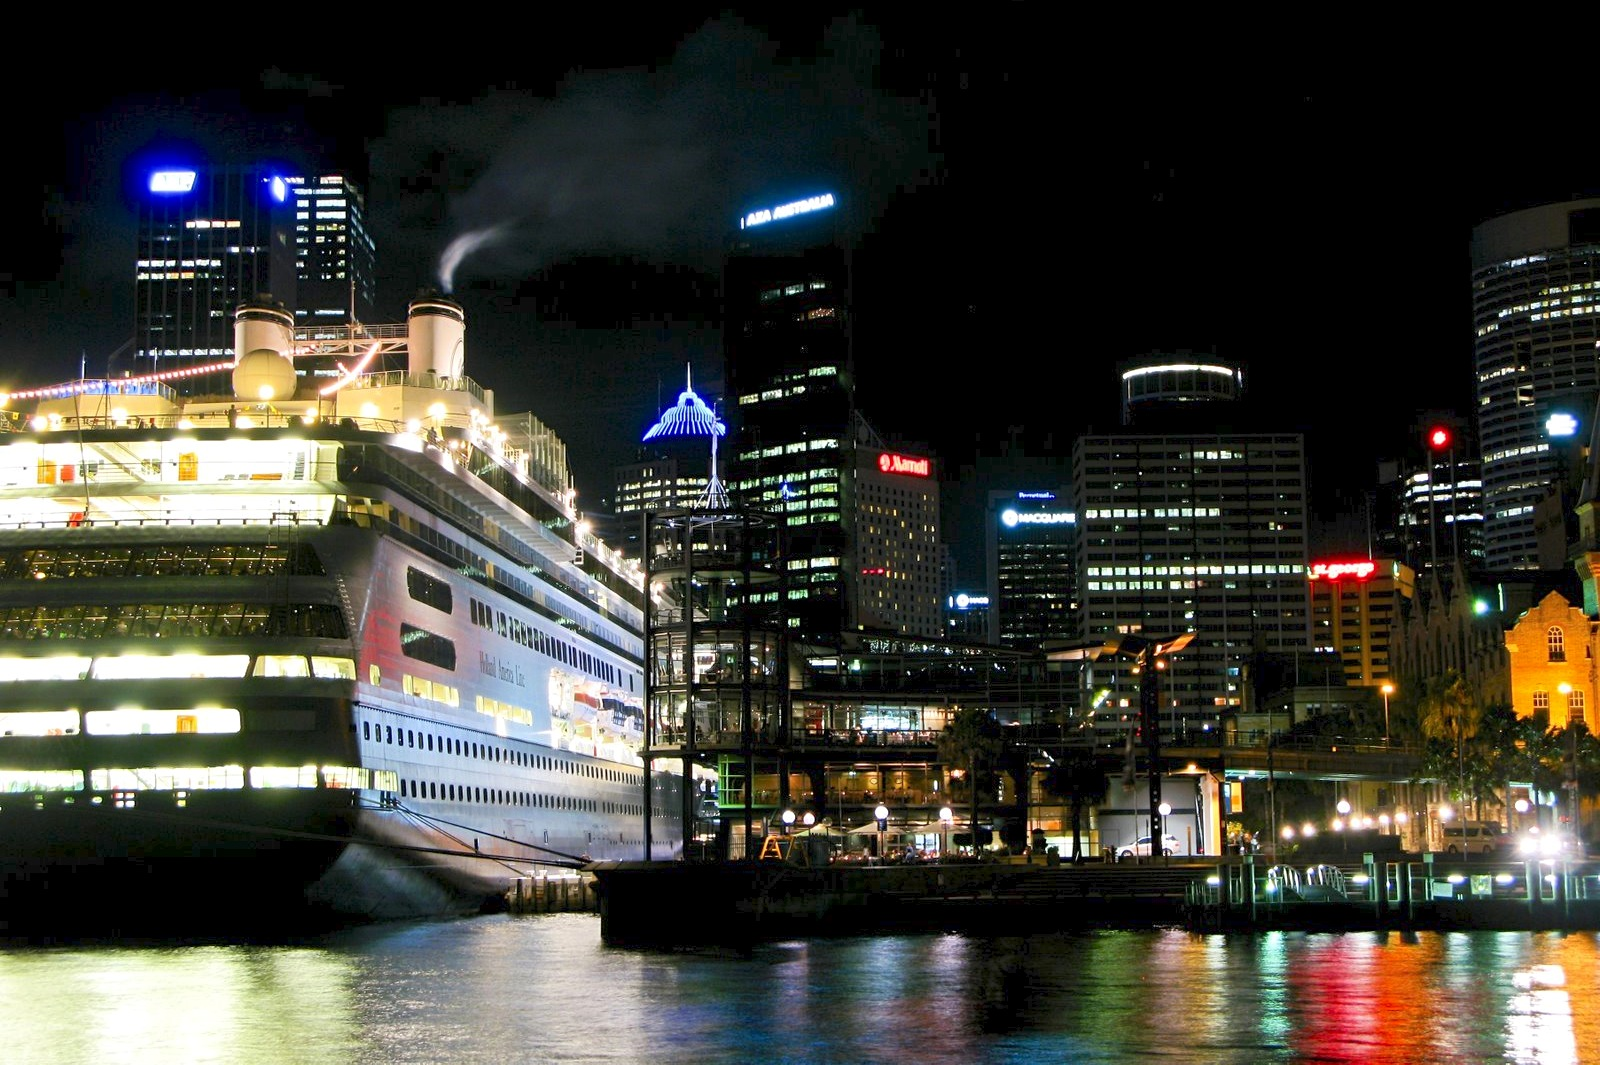 Cruise ship in Circular Quay at night